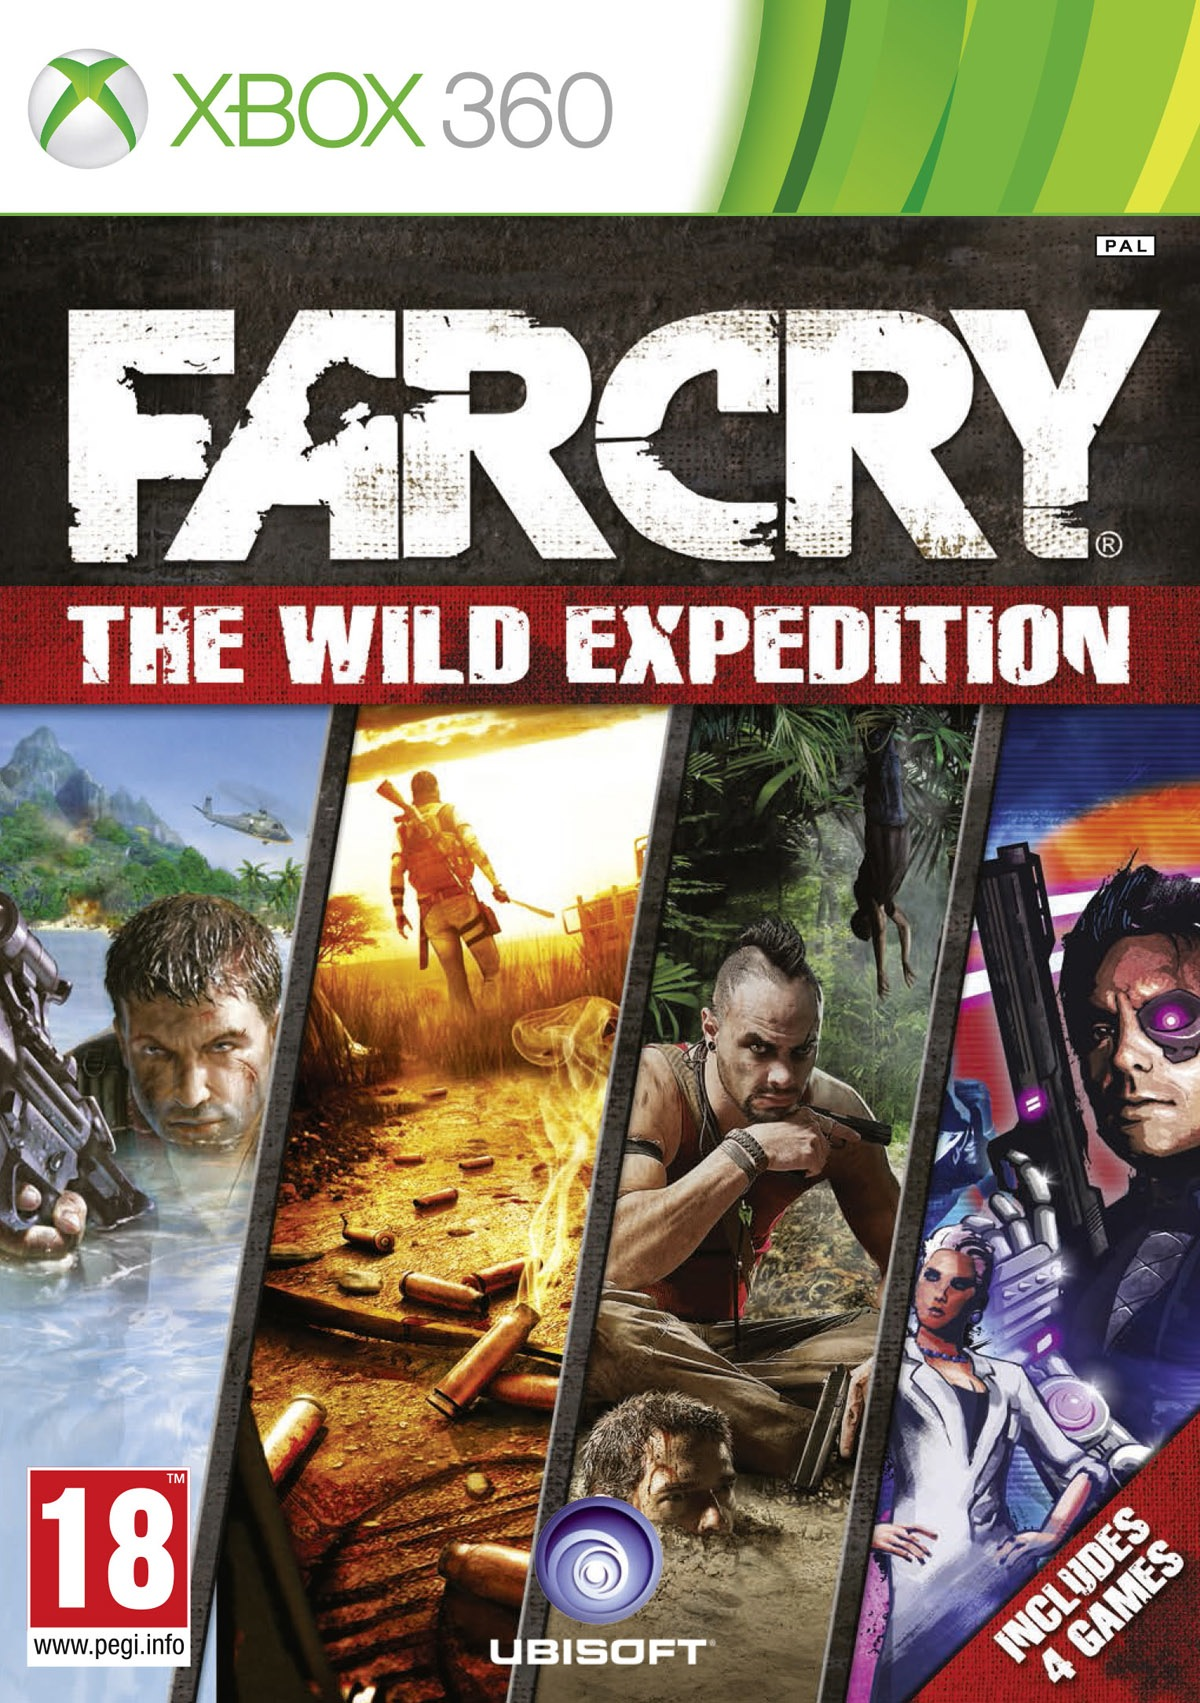 Far Cry Classic Dated For February On Xbla Priced Too Xbox One Xbox 360 News At Xboxachievements Com